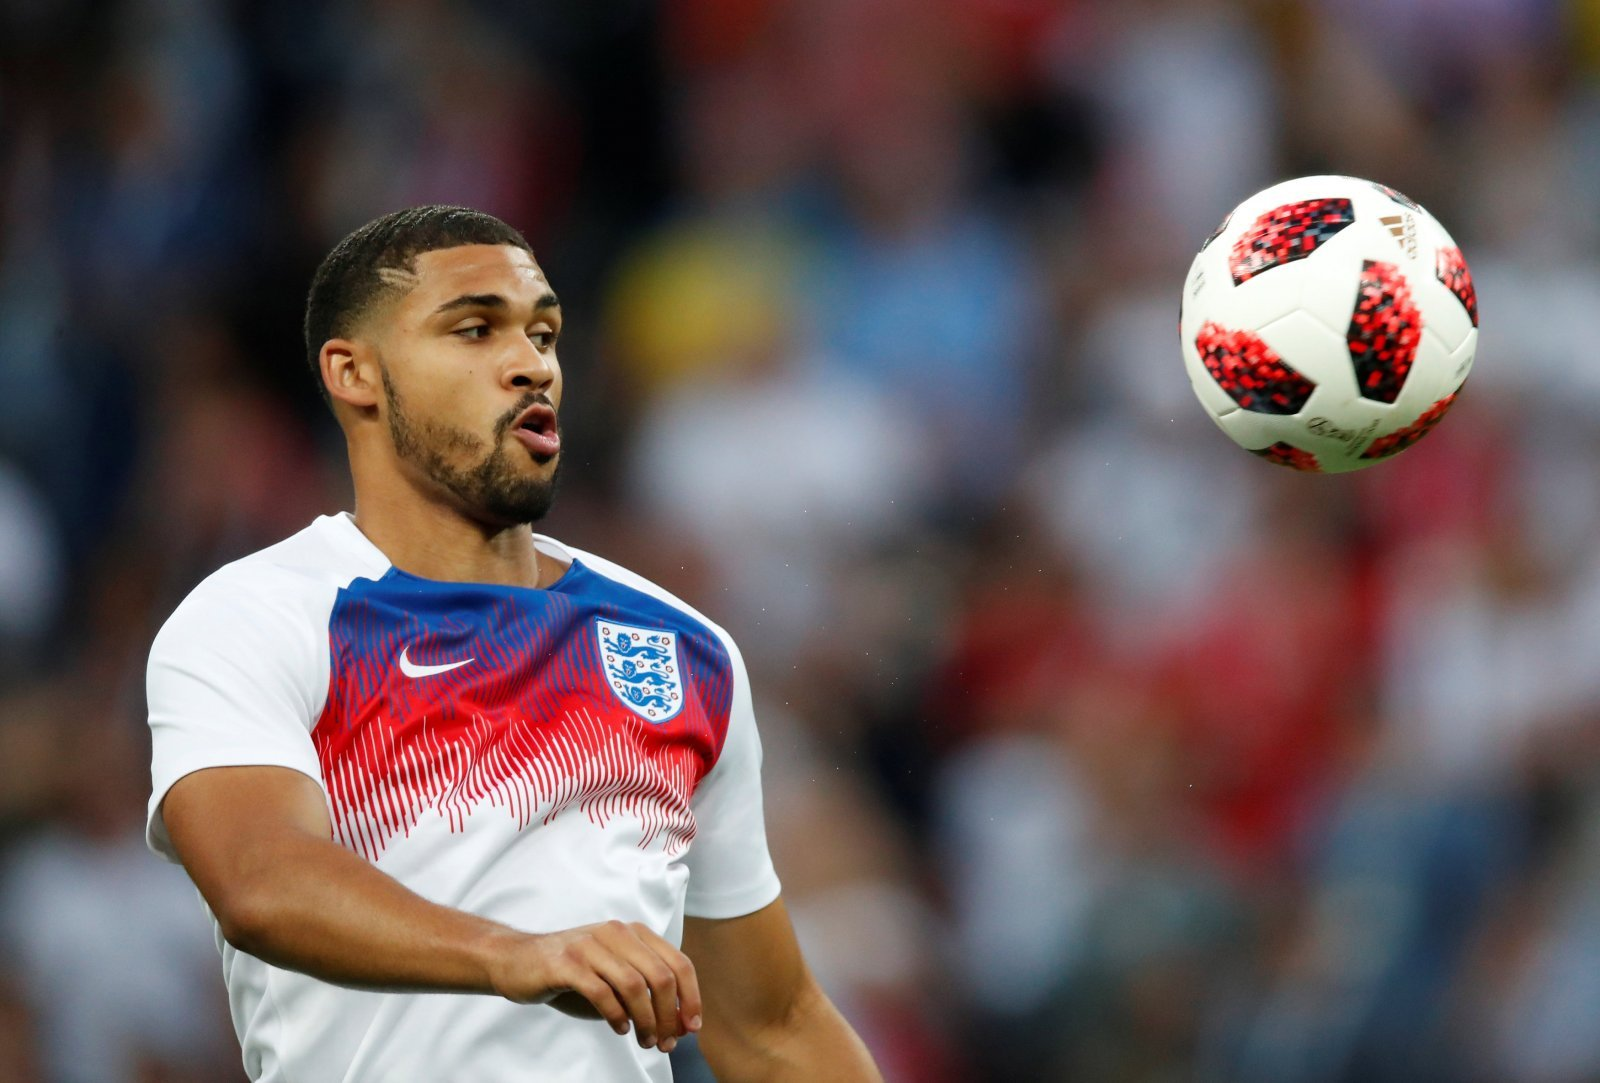 Loftus-Cheek desperately needs a Chelsea chance